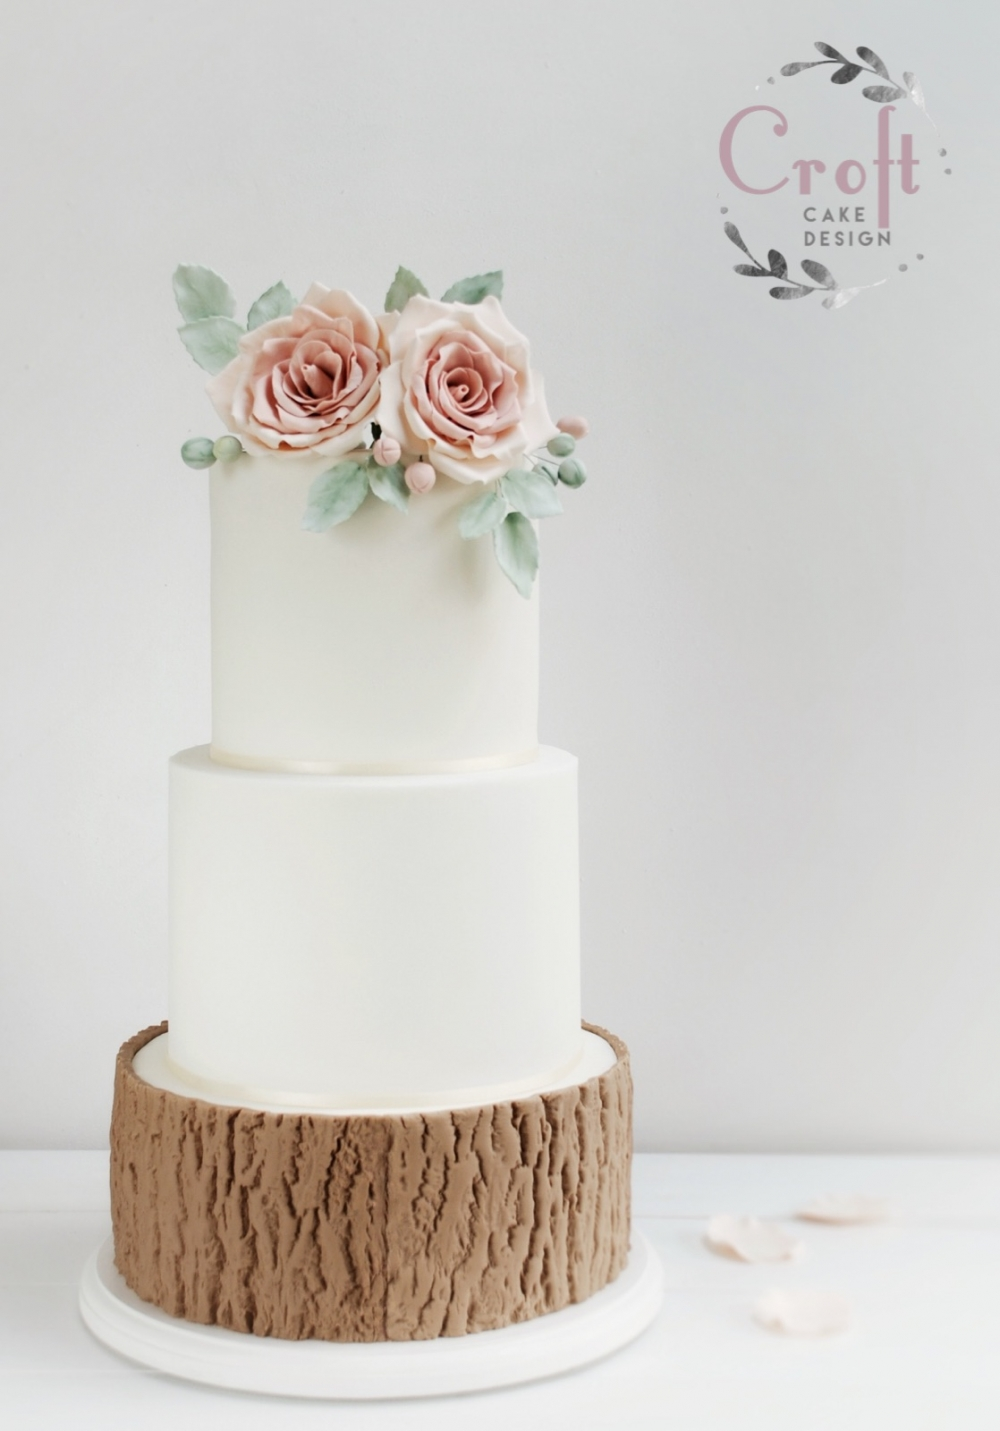 3 tier wedding cake with sugar flowers